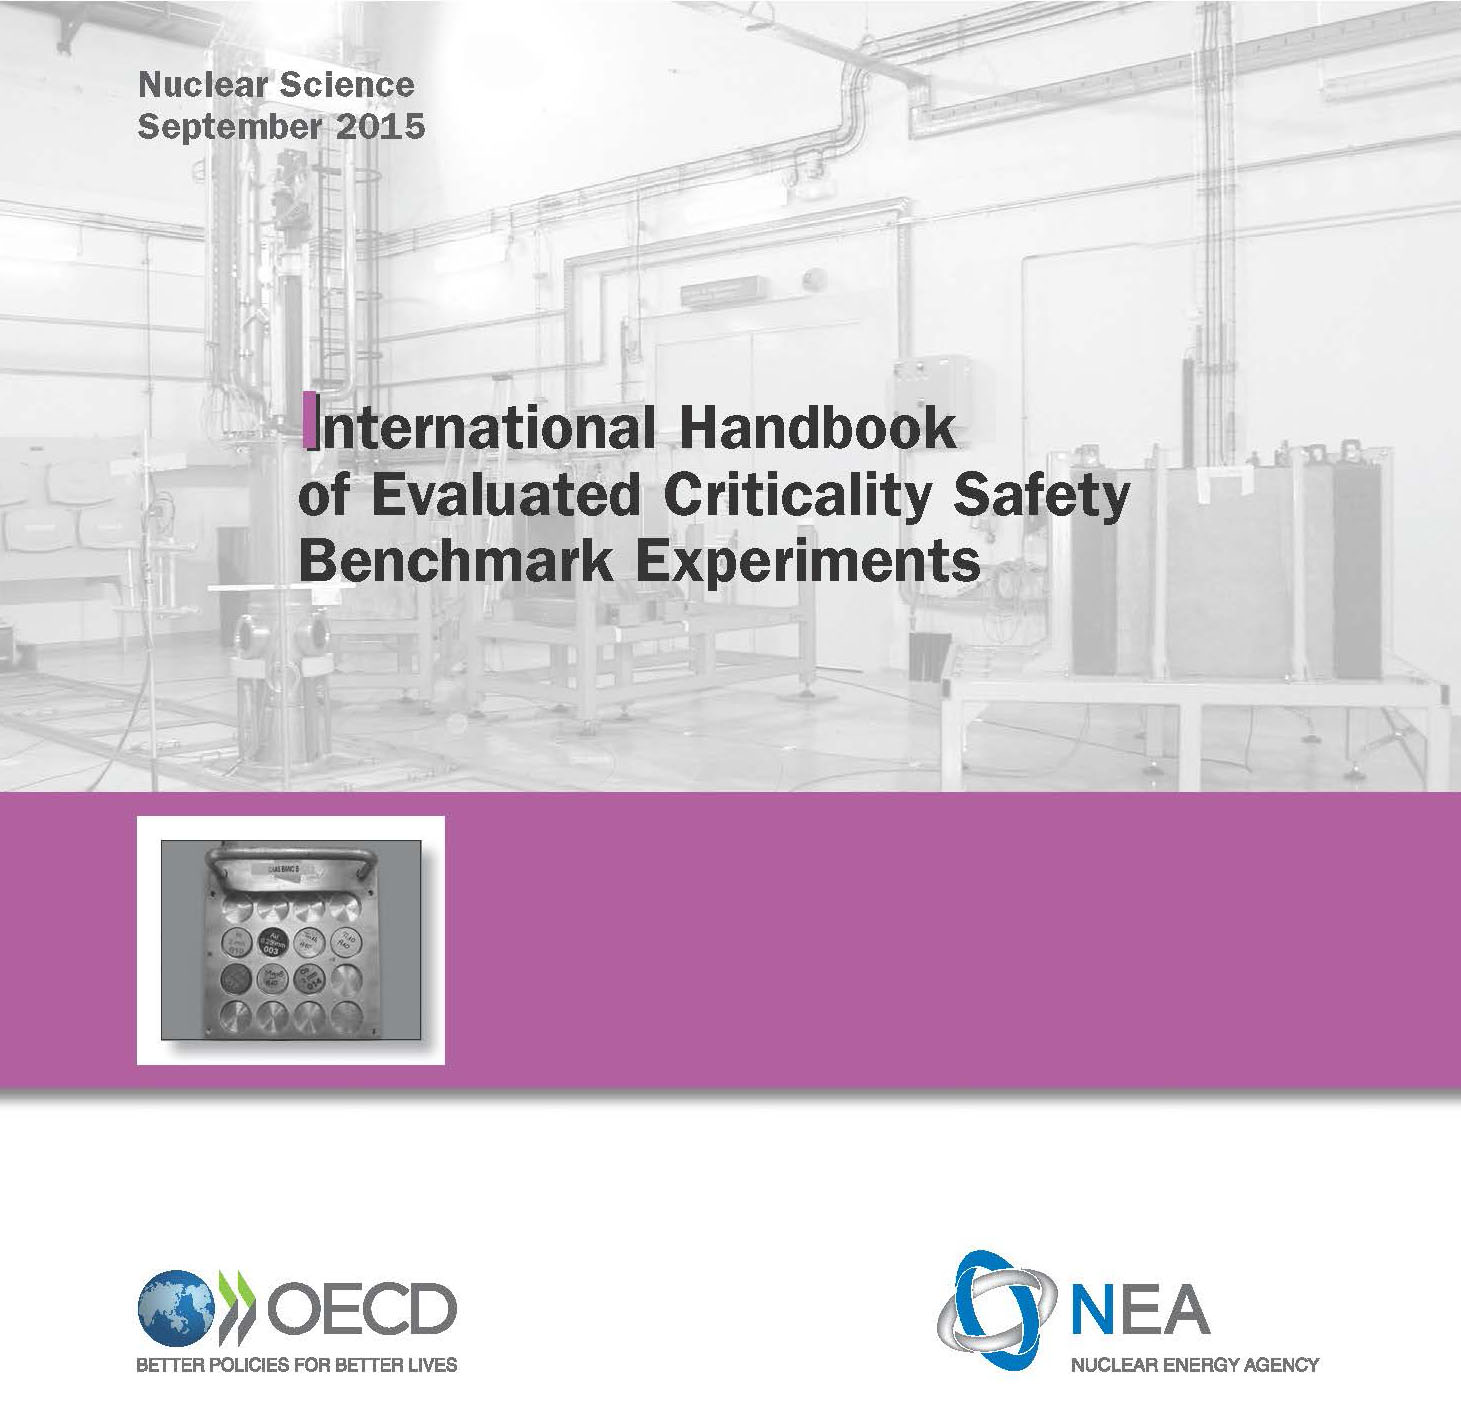 International Handbook of Evaluated Criticality Safety Benchmark Experiments